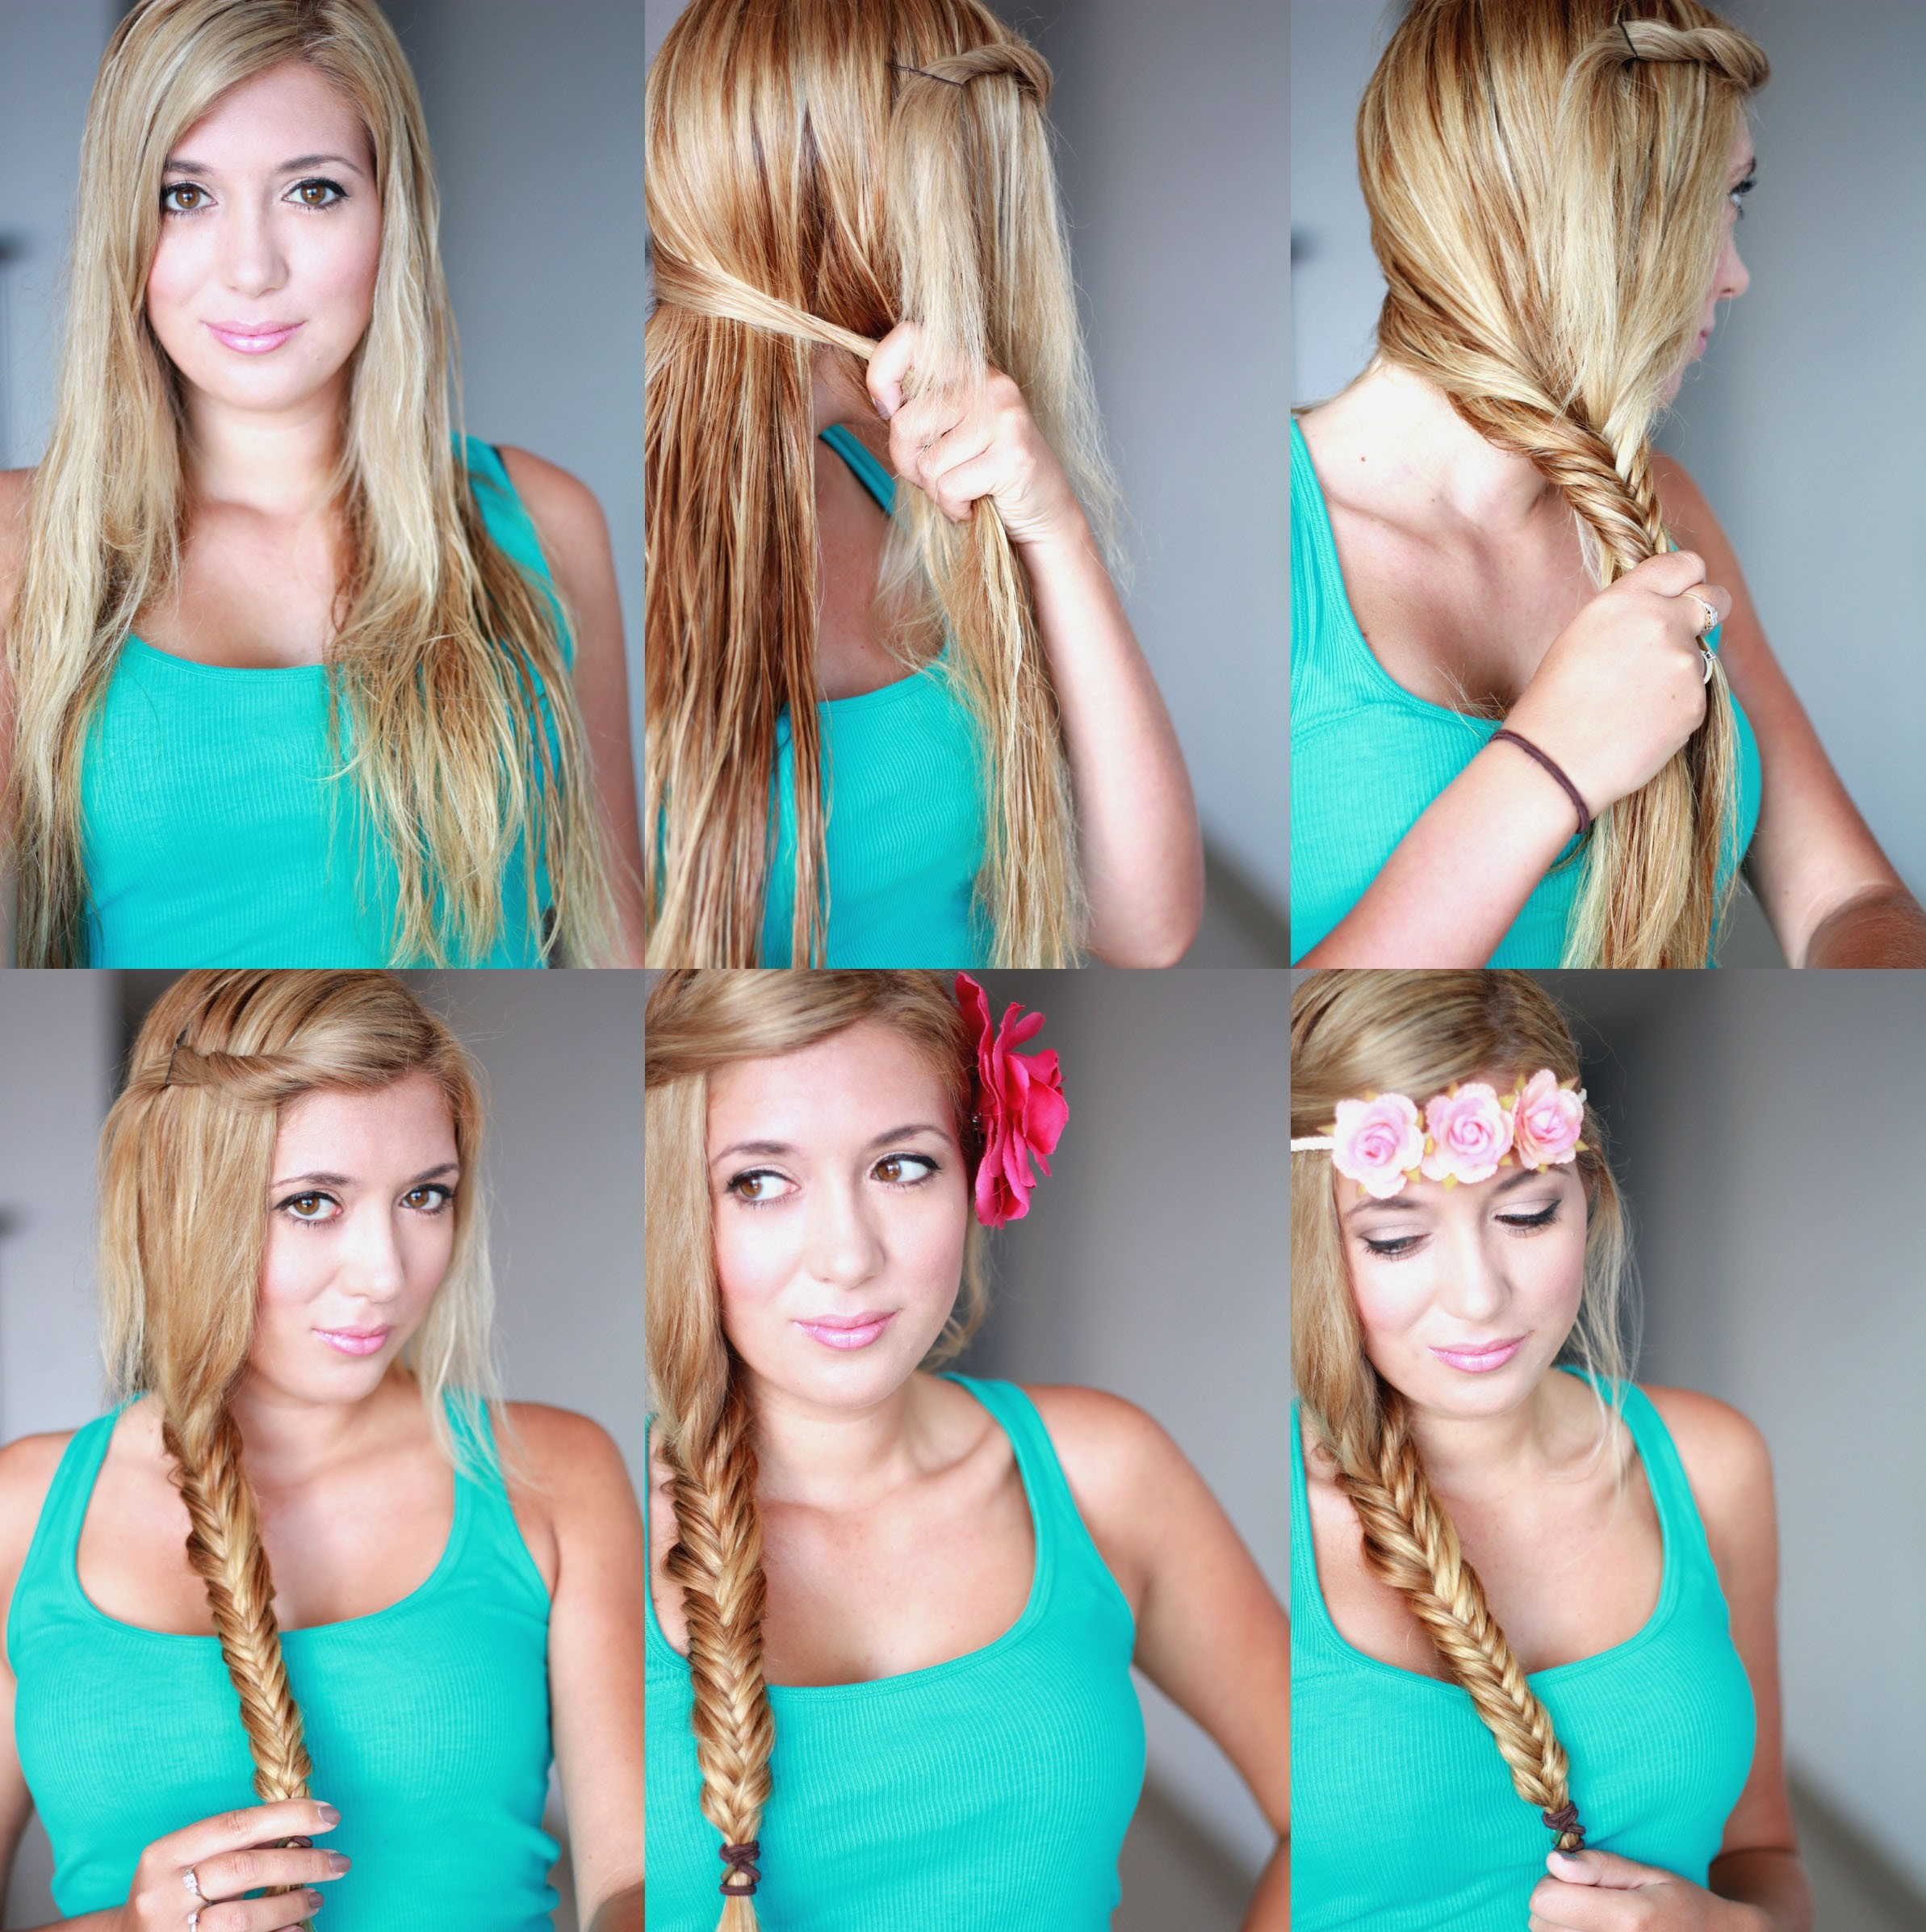 Groovy Cute Braided Hairstyle Tutorial For Girls How To Fishtail Braid Hairstyles For Women Draintrainus